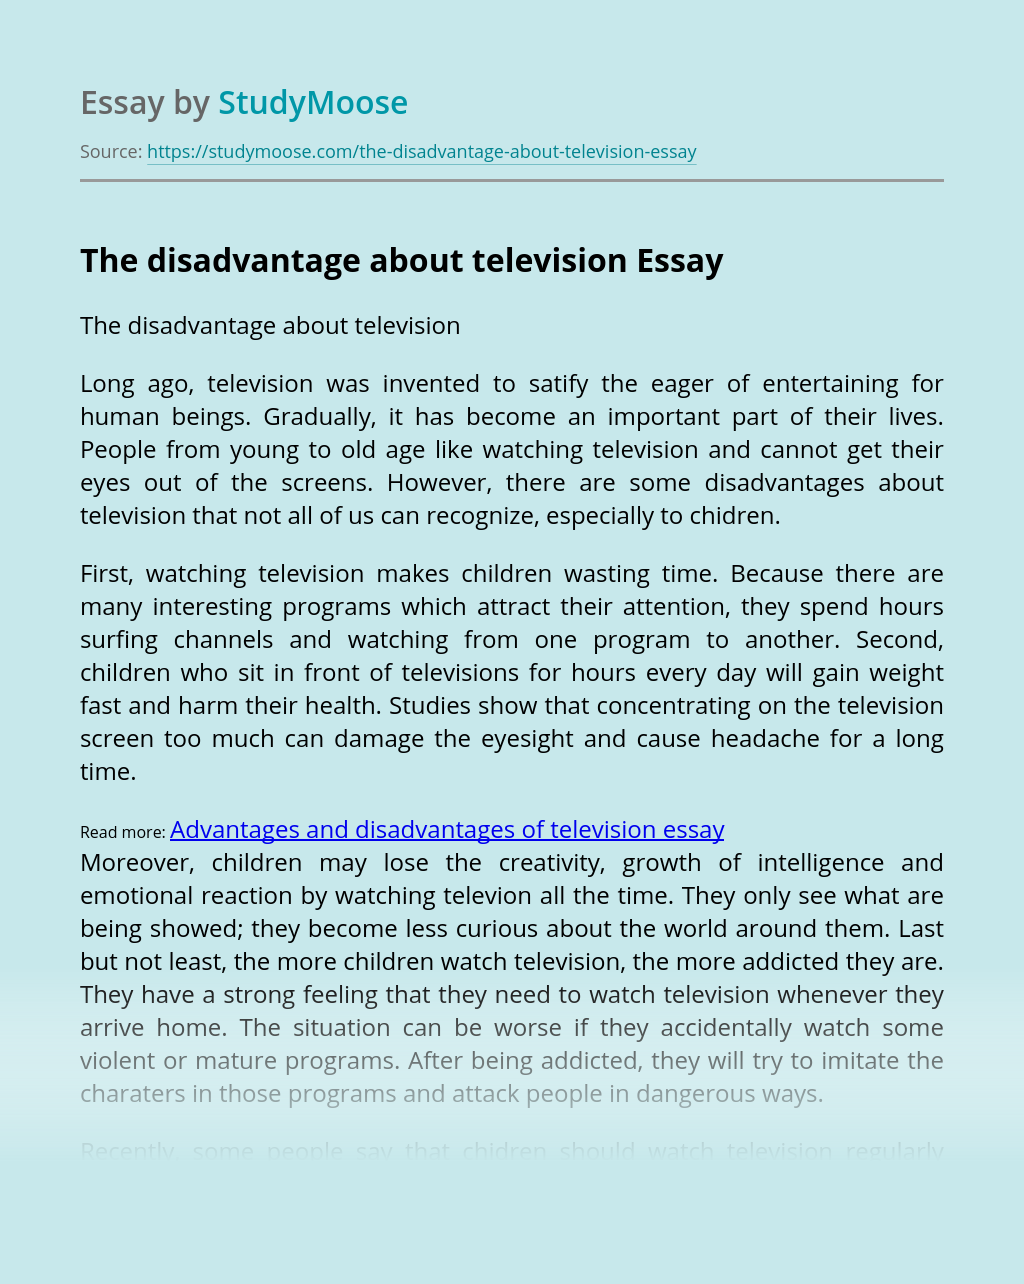 The disadvantage about television